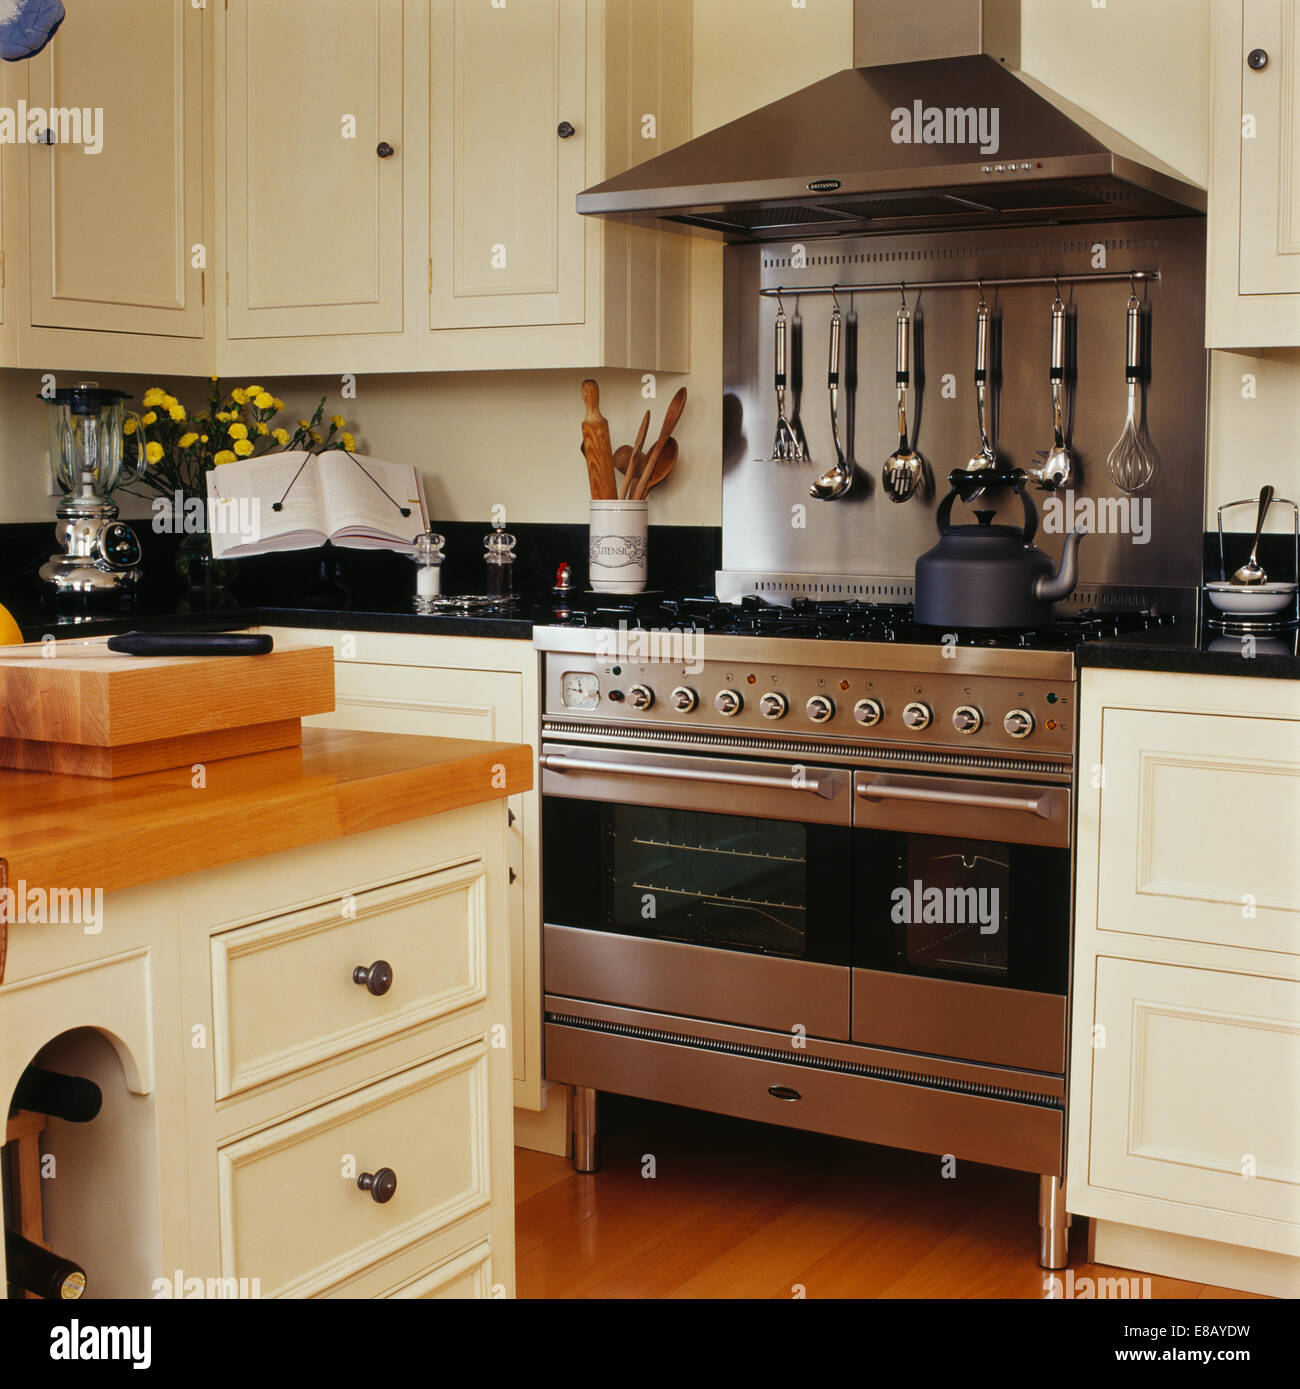 Stainless Steel Splashback Stainless Steel Range Oven And Splash Back In Country Kitchen With